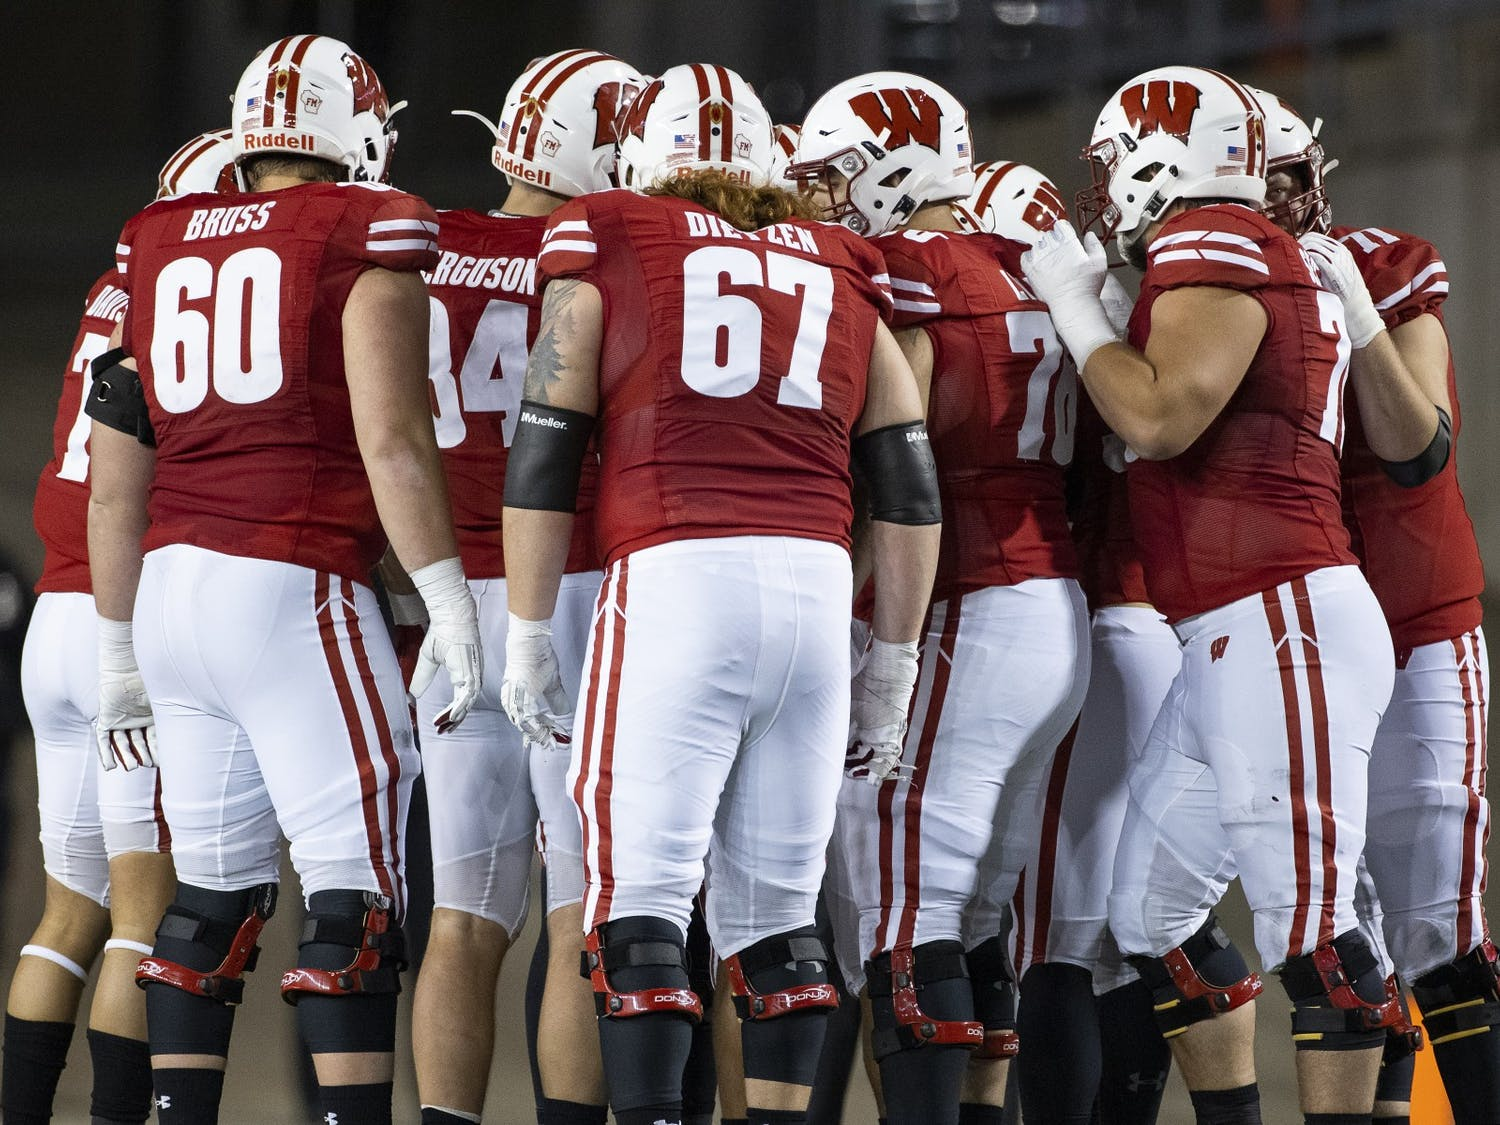 Wisconsin Badgers offense huddles during an NCAA college football game against the Illinois Fighting Illini Friday, Oct. 23, 2020, in Madison, Wis. The Badgers won 45-7. (Photo by David Stluka/Wisconsin Athletic Communications)